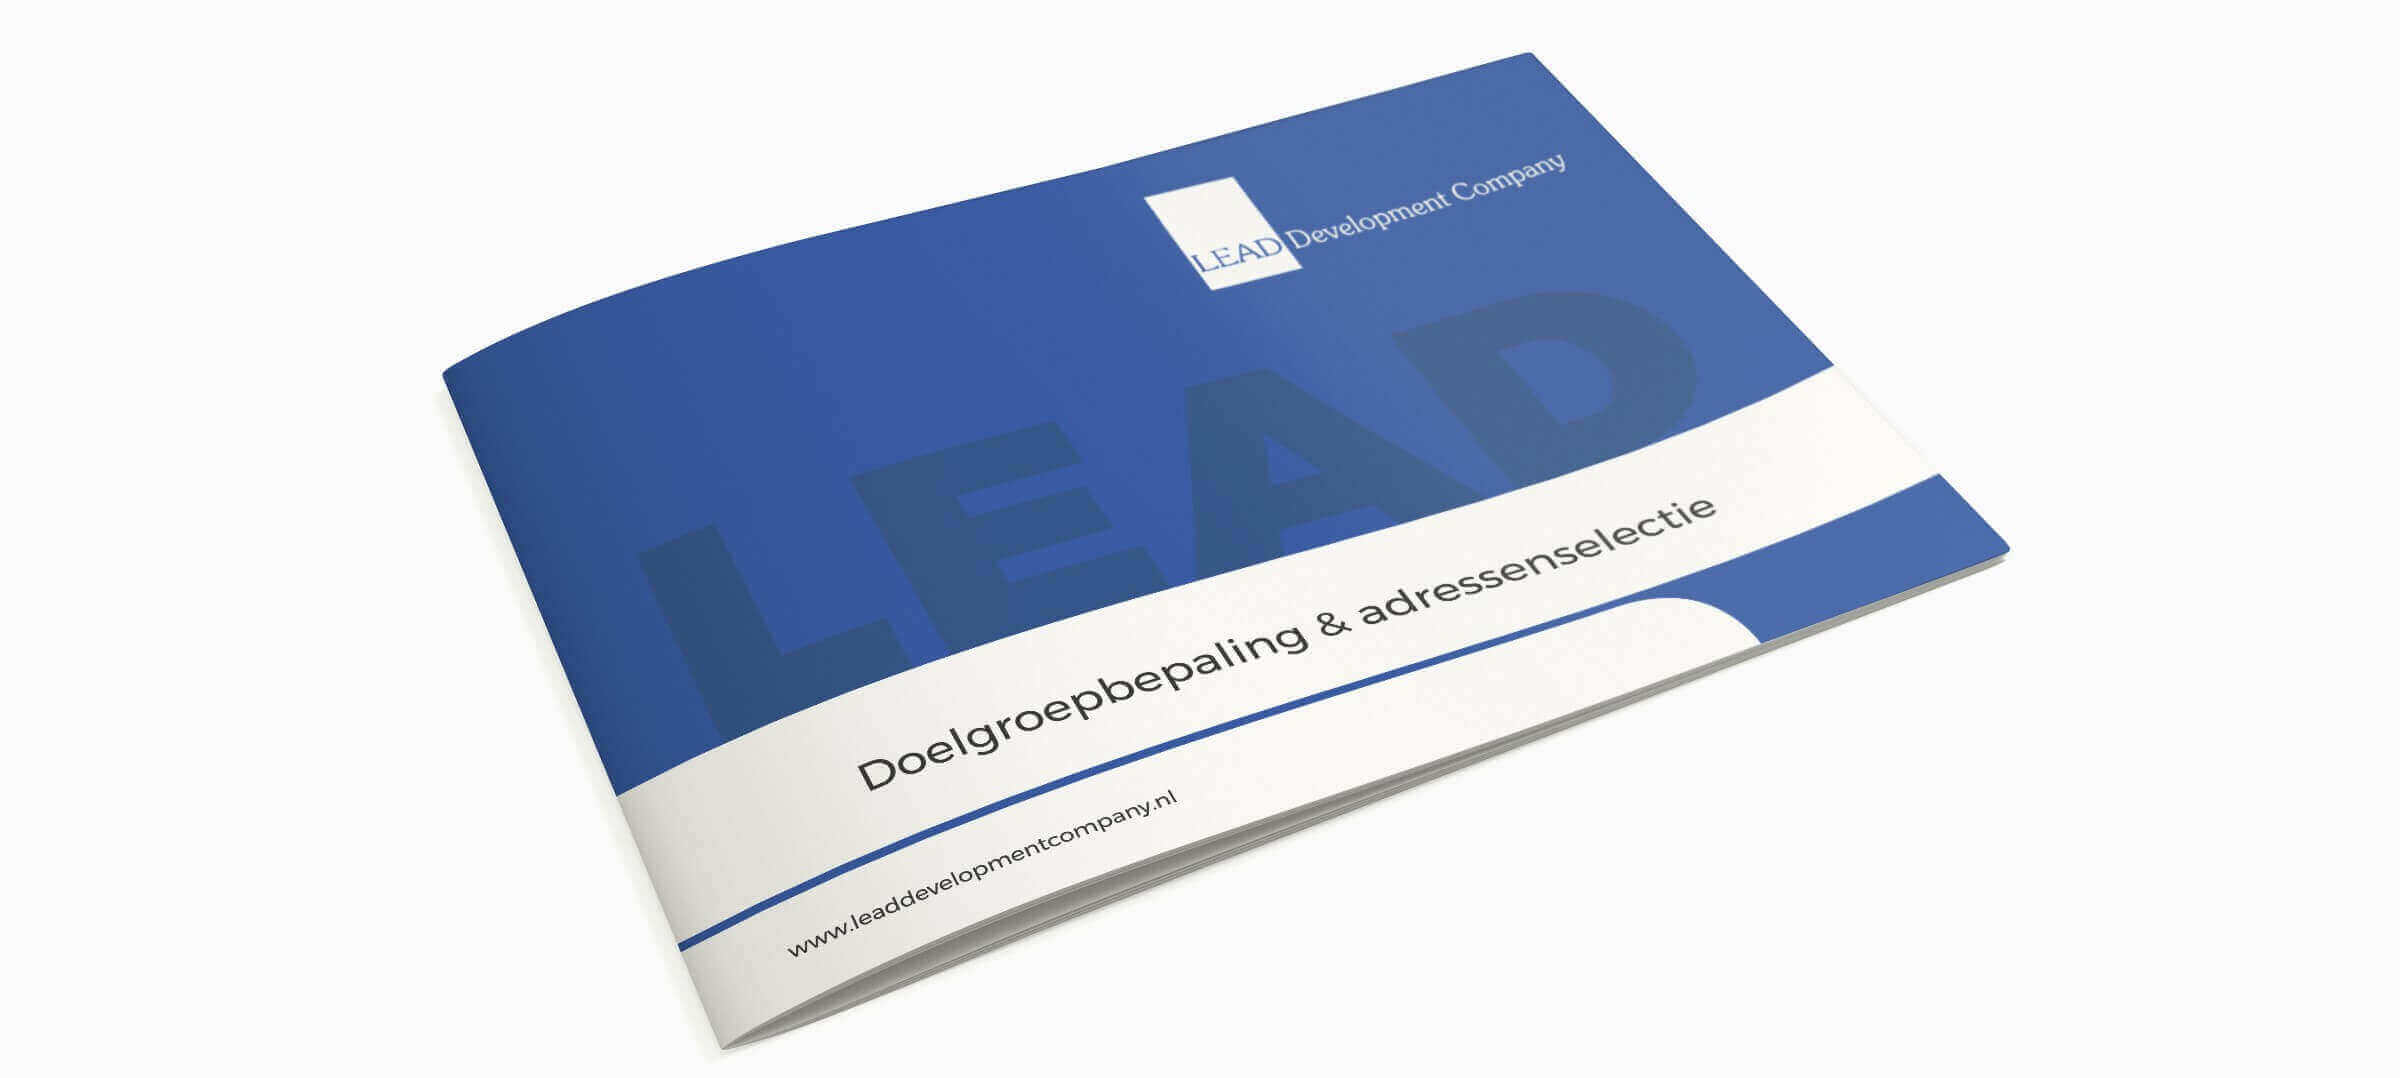 Whitepaper cold calling doelgroep